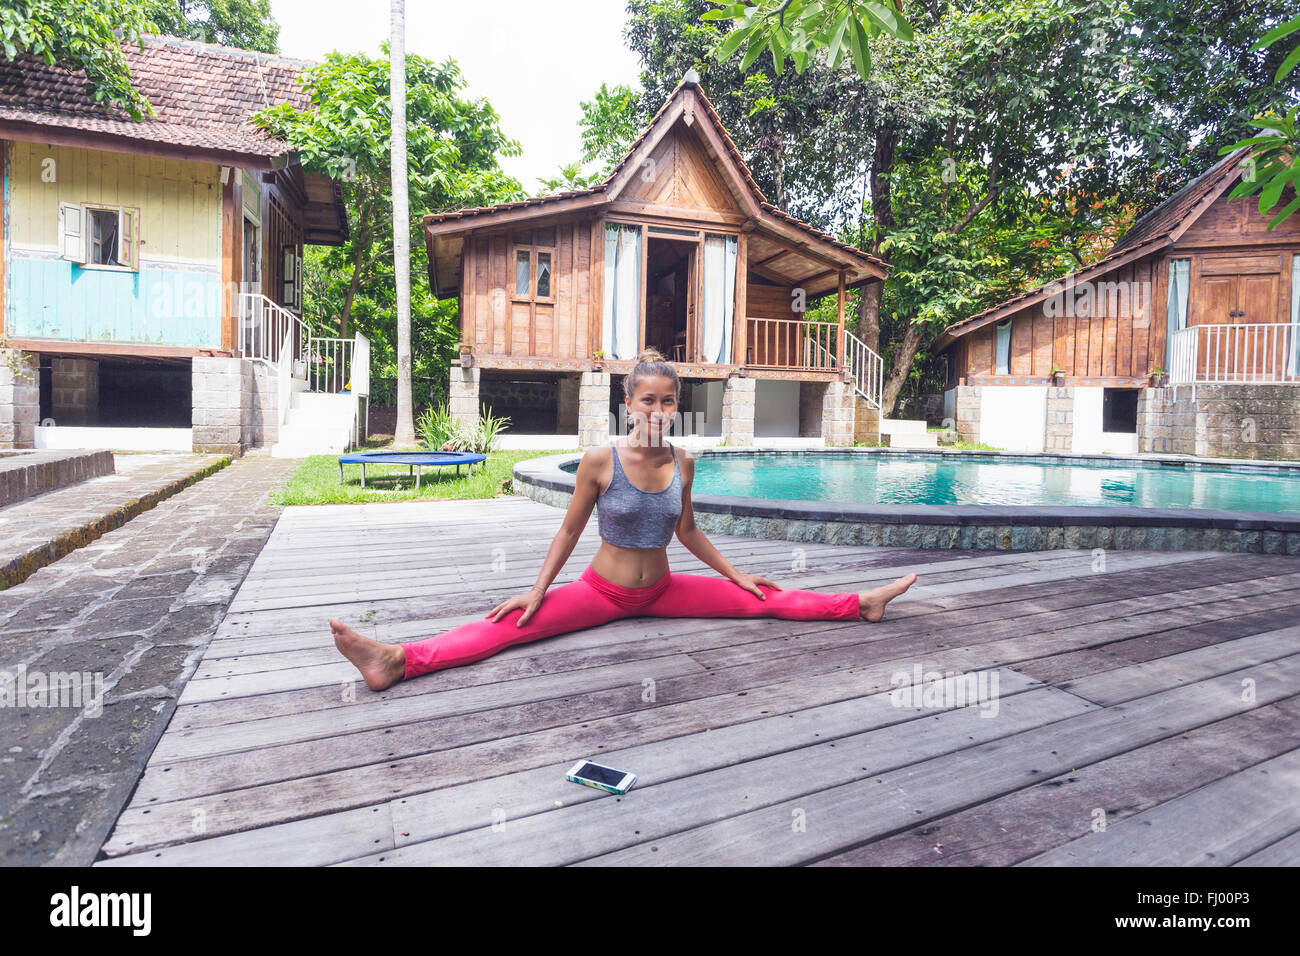 L'INDONÉSIE, Bali, woman practicing yoga au bord de l'eau Photo Stock